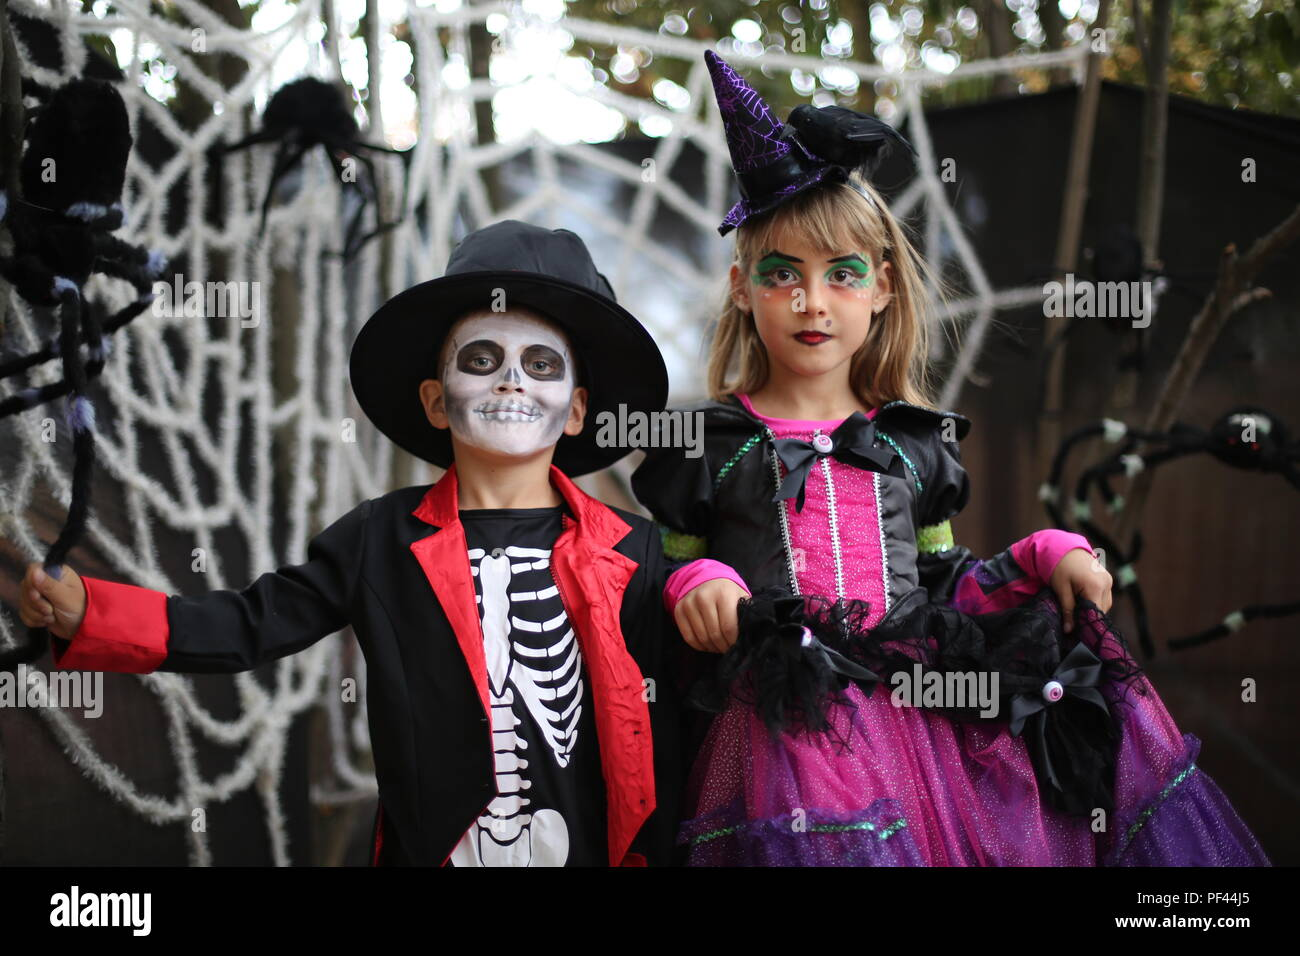 Halloween kids, Trick or Treat. Kids indossa i costumi di scheletro e la strega per Halloween trucco-o-trattare party Immagini Stock